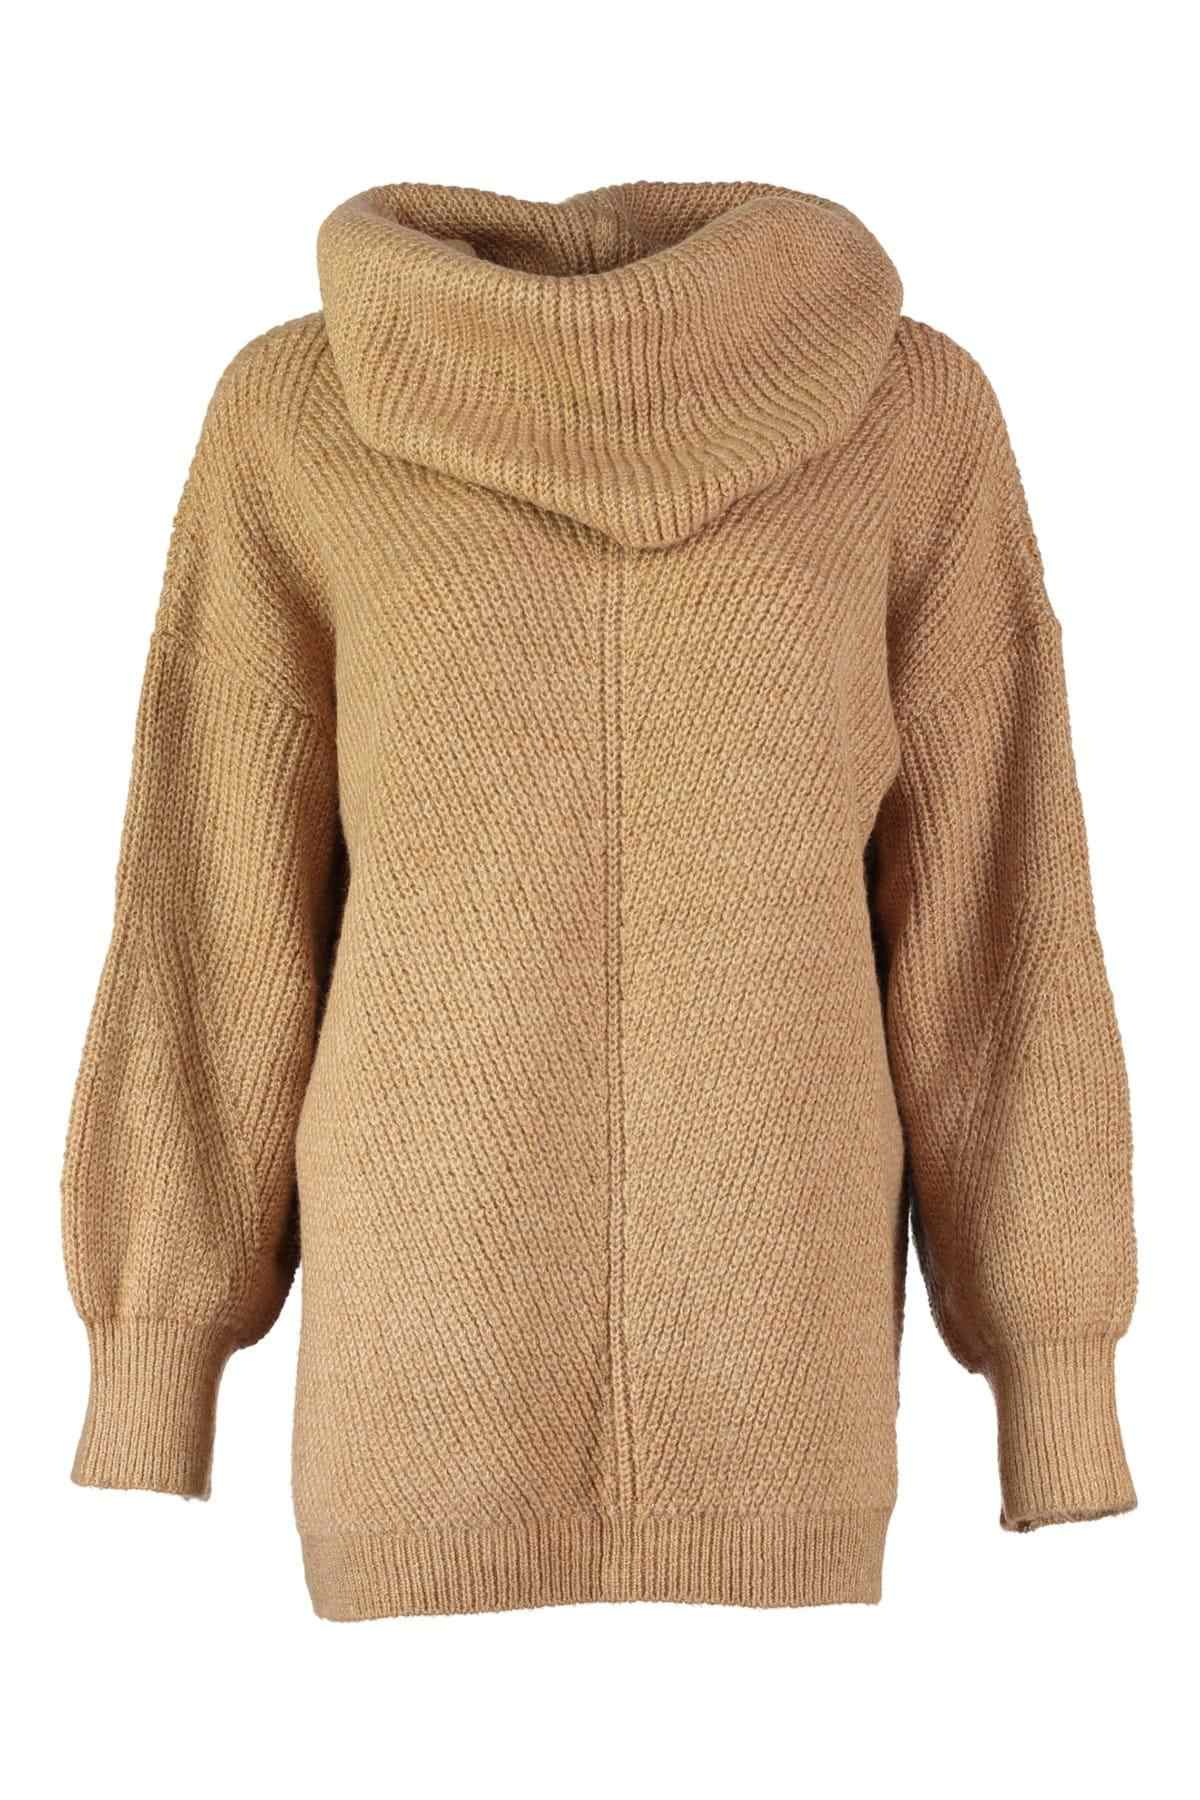 Trendyol WOMEN-Camel Funnel Collar Sweater Winter Sweater TWOAW20NV0015